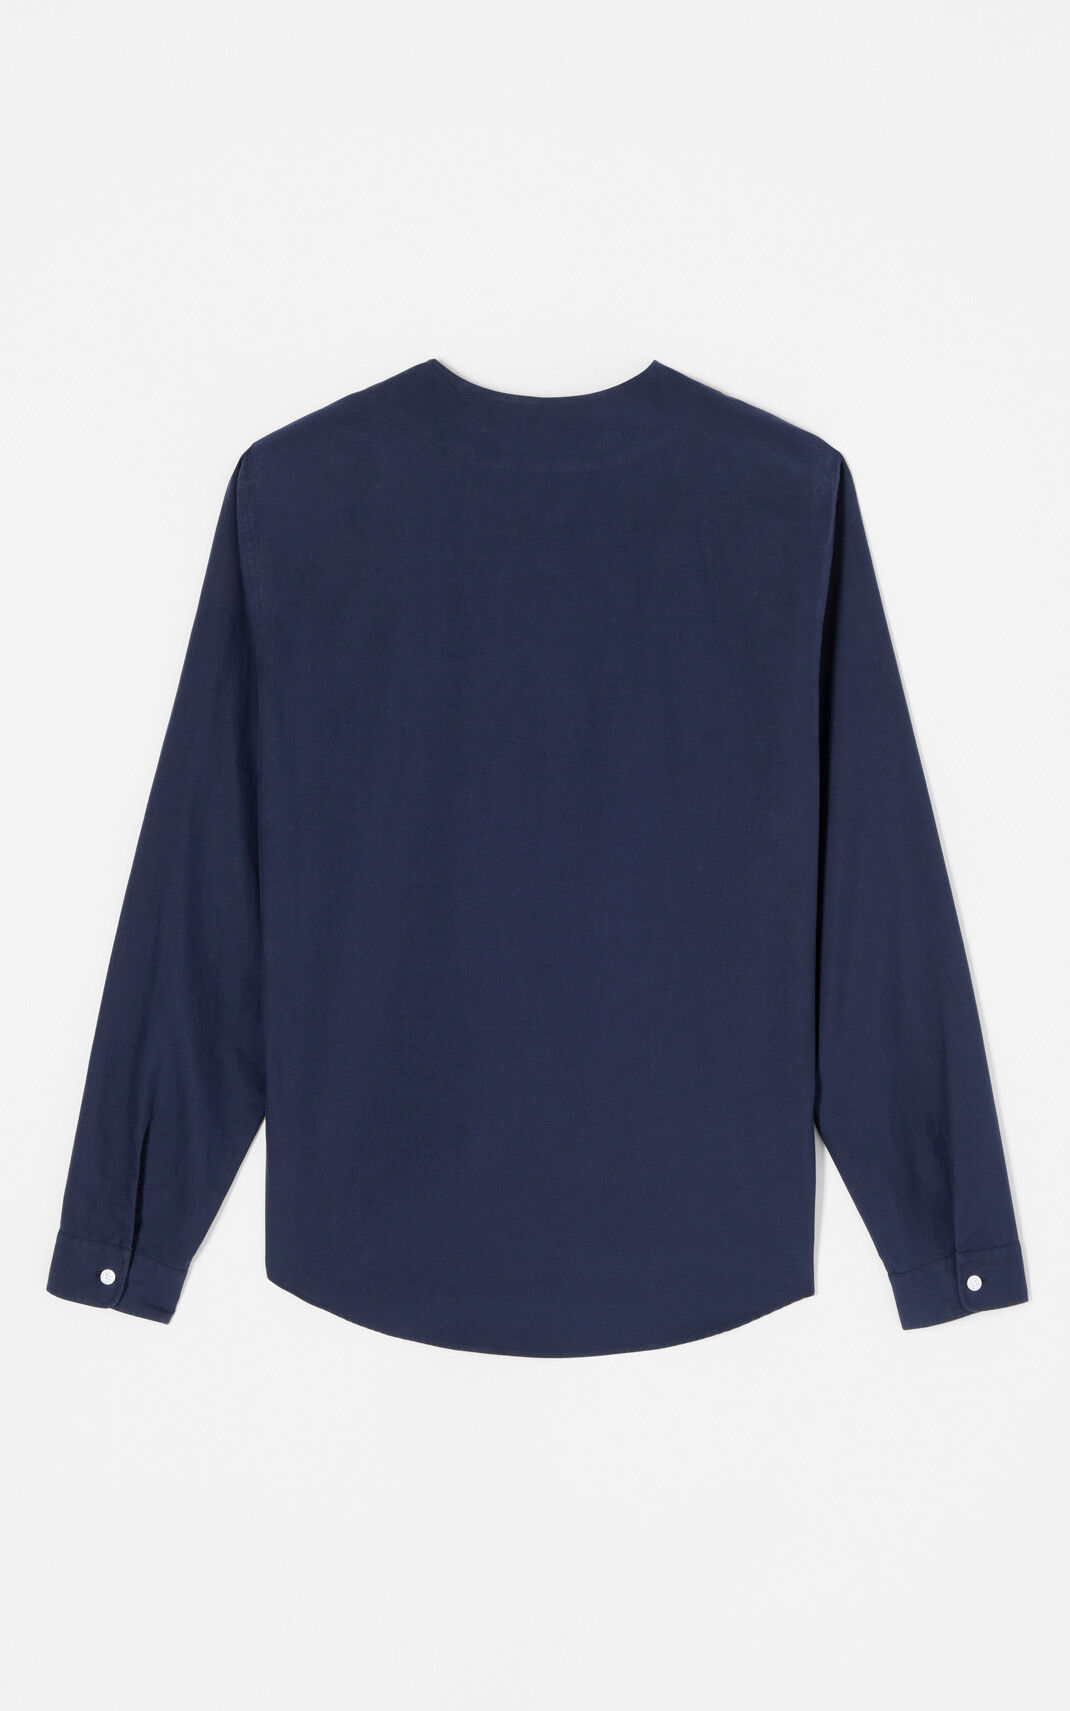 NAVY BLUE Baseball-style shirt for men KENZO